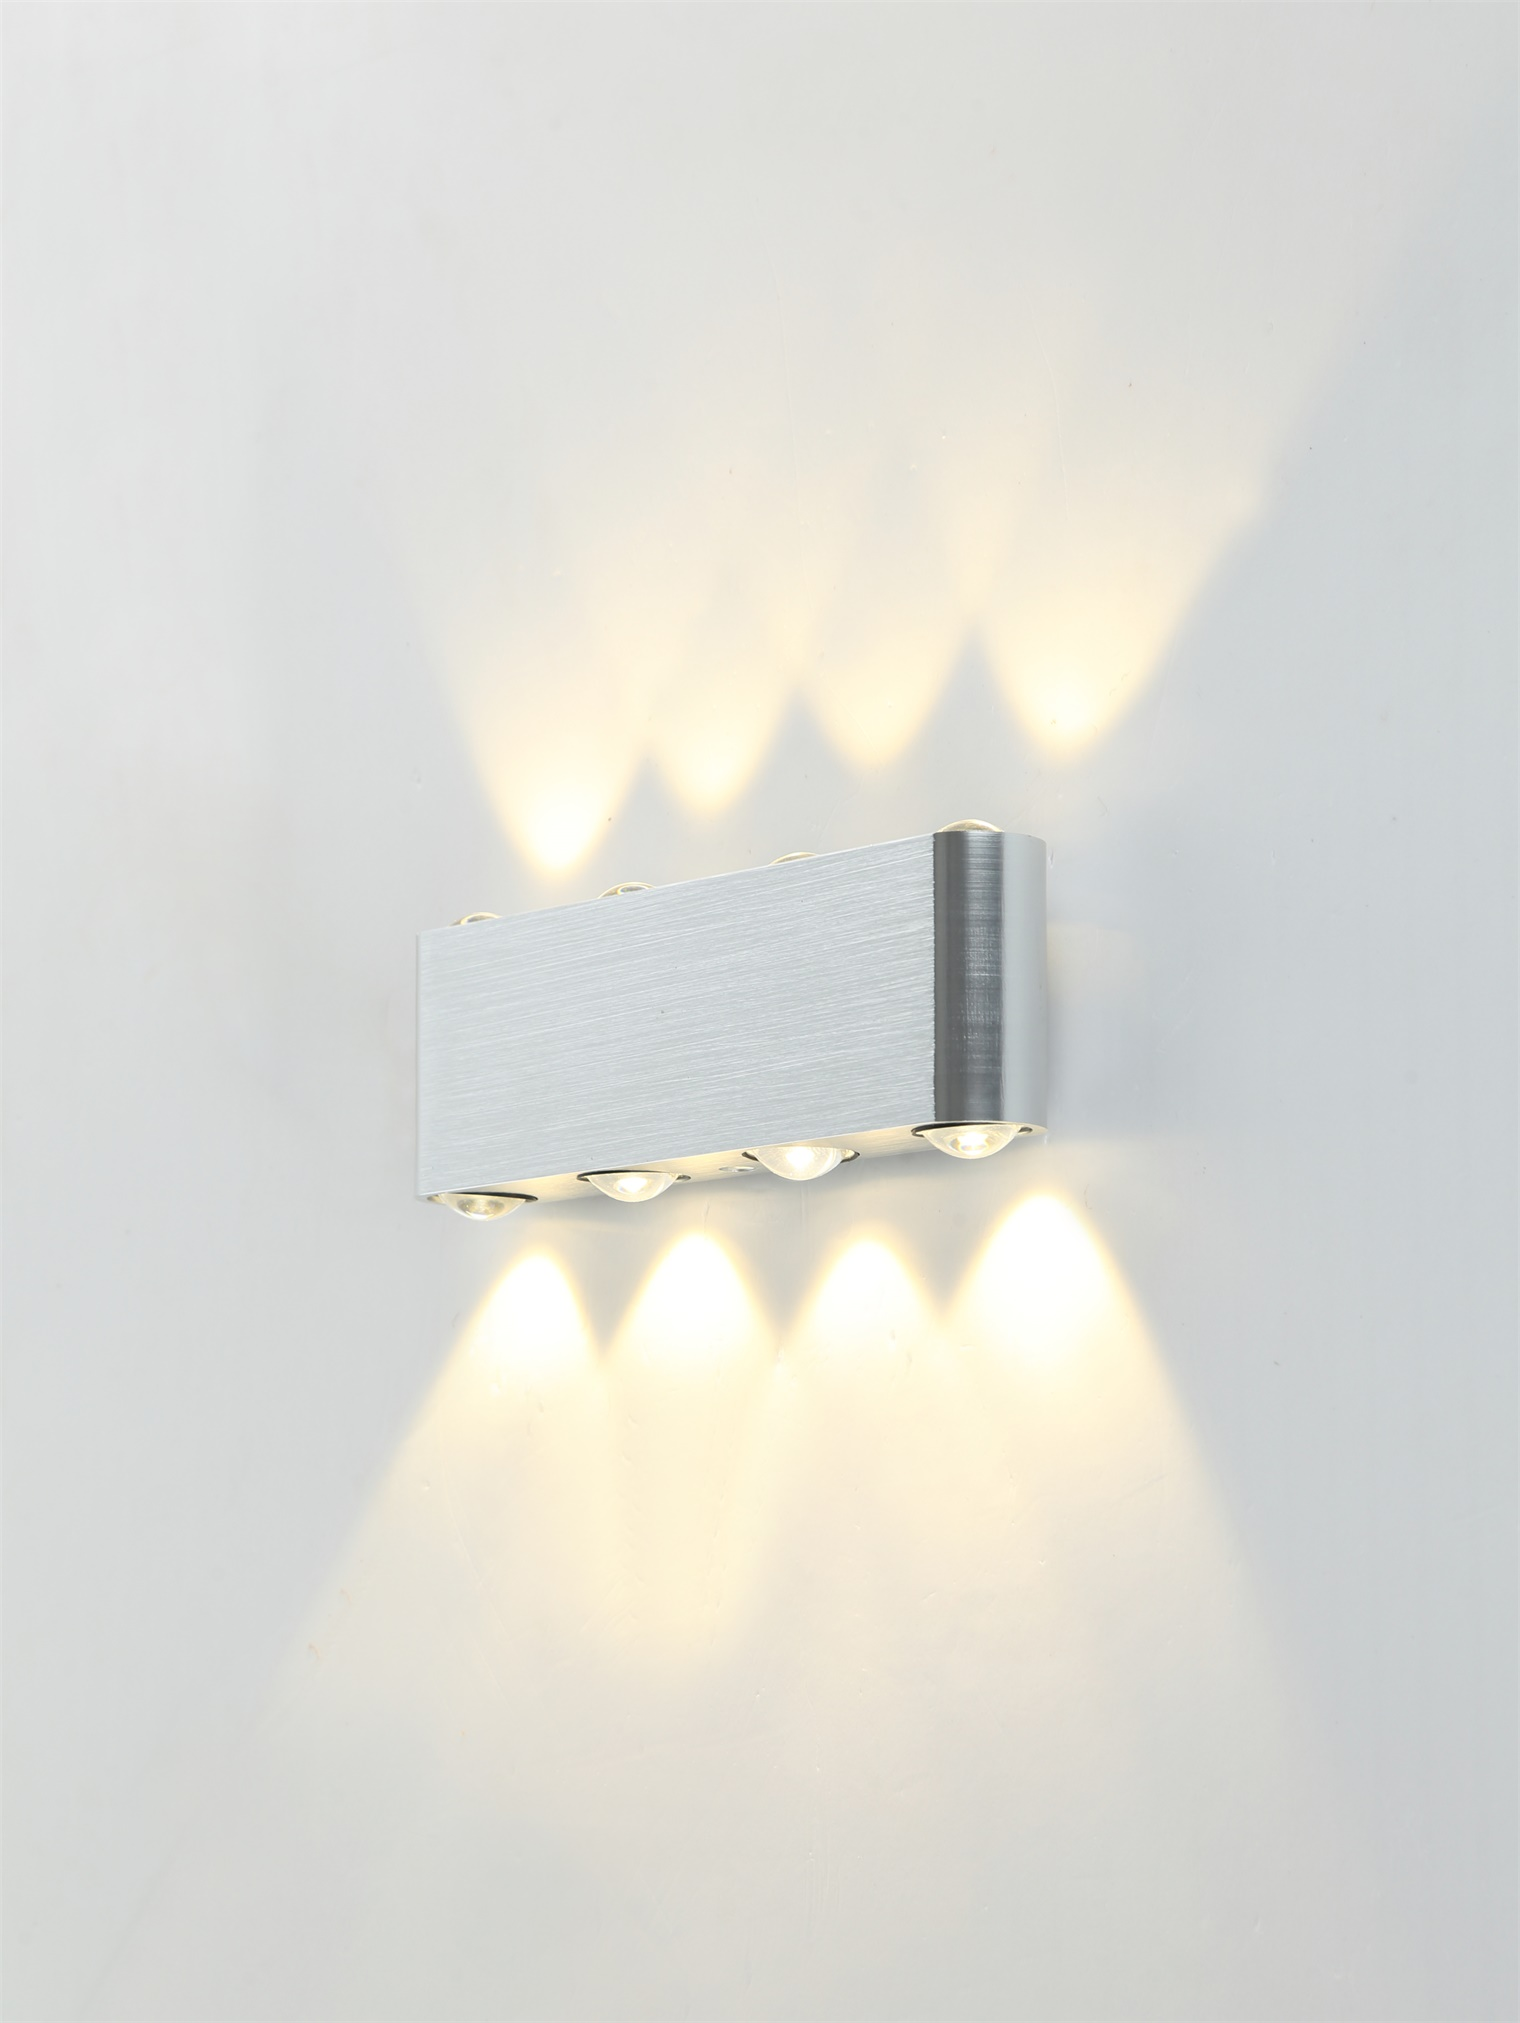 Saintly best bathroom wall lights supply for hallway-1